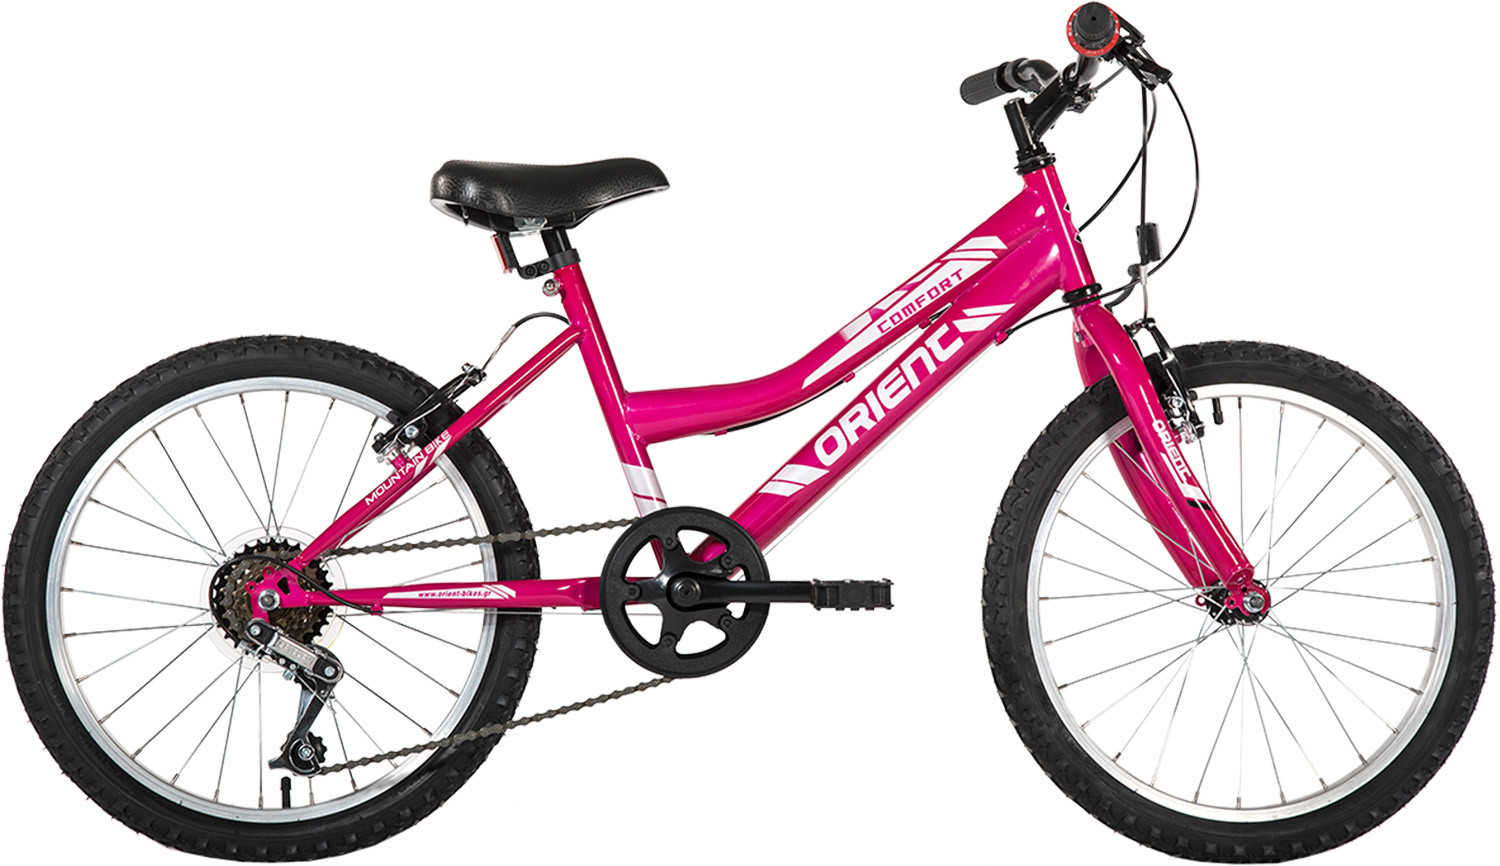 COMFORT 20″ lady 6sp. bike image